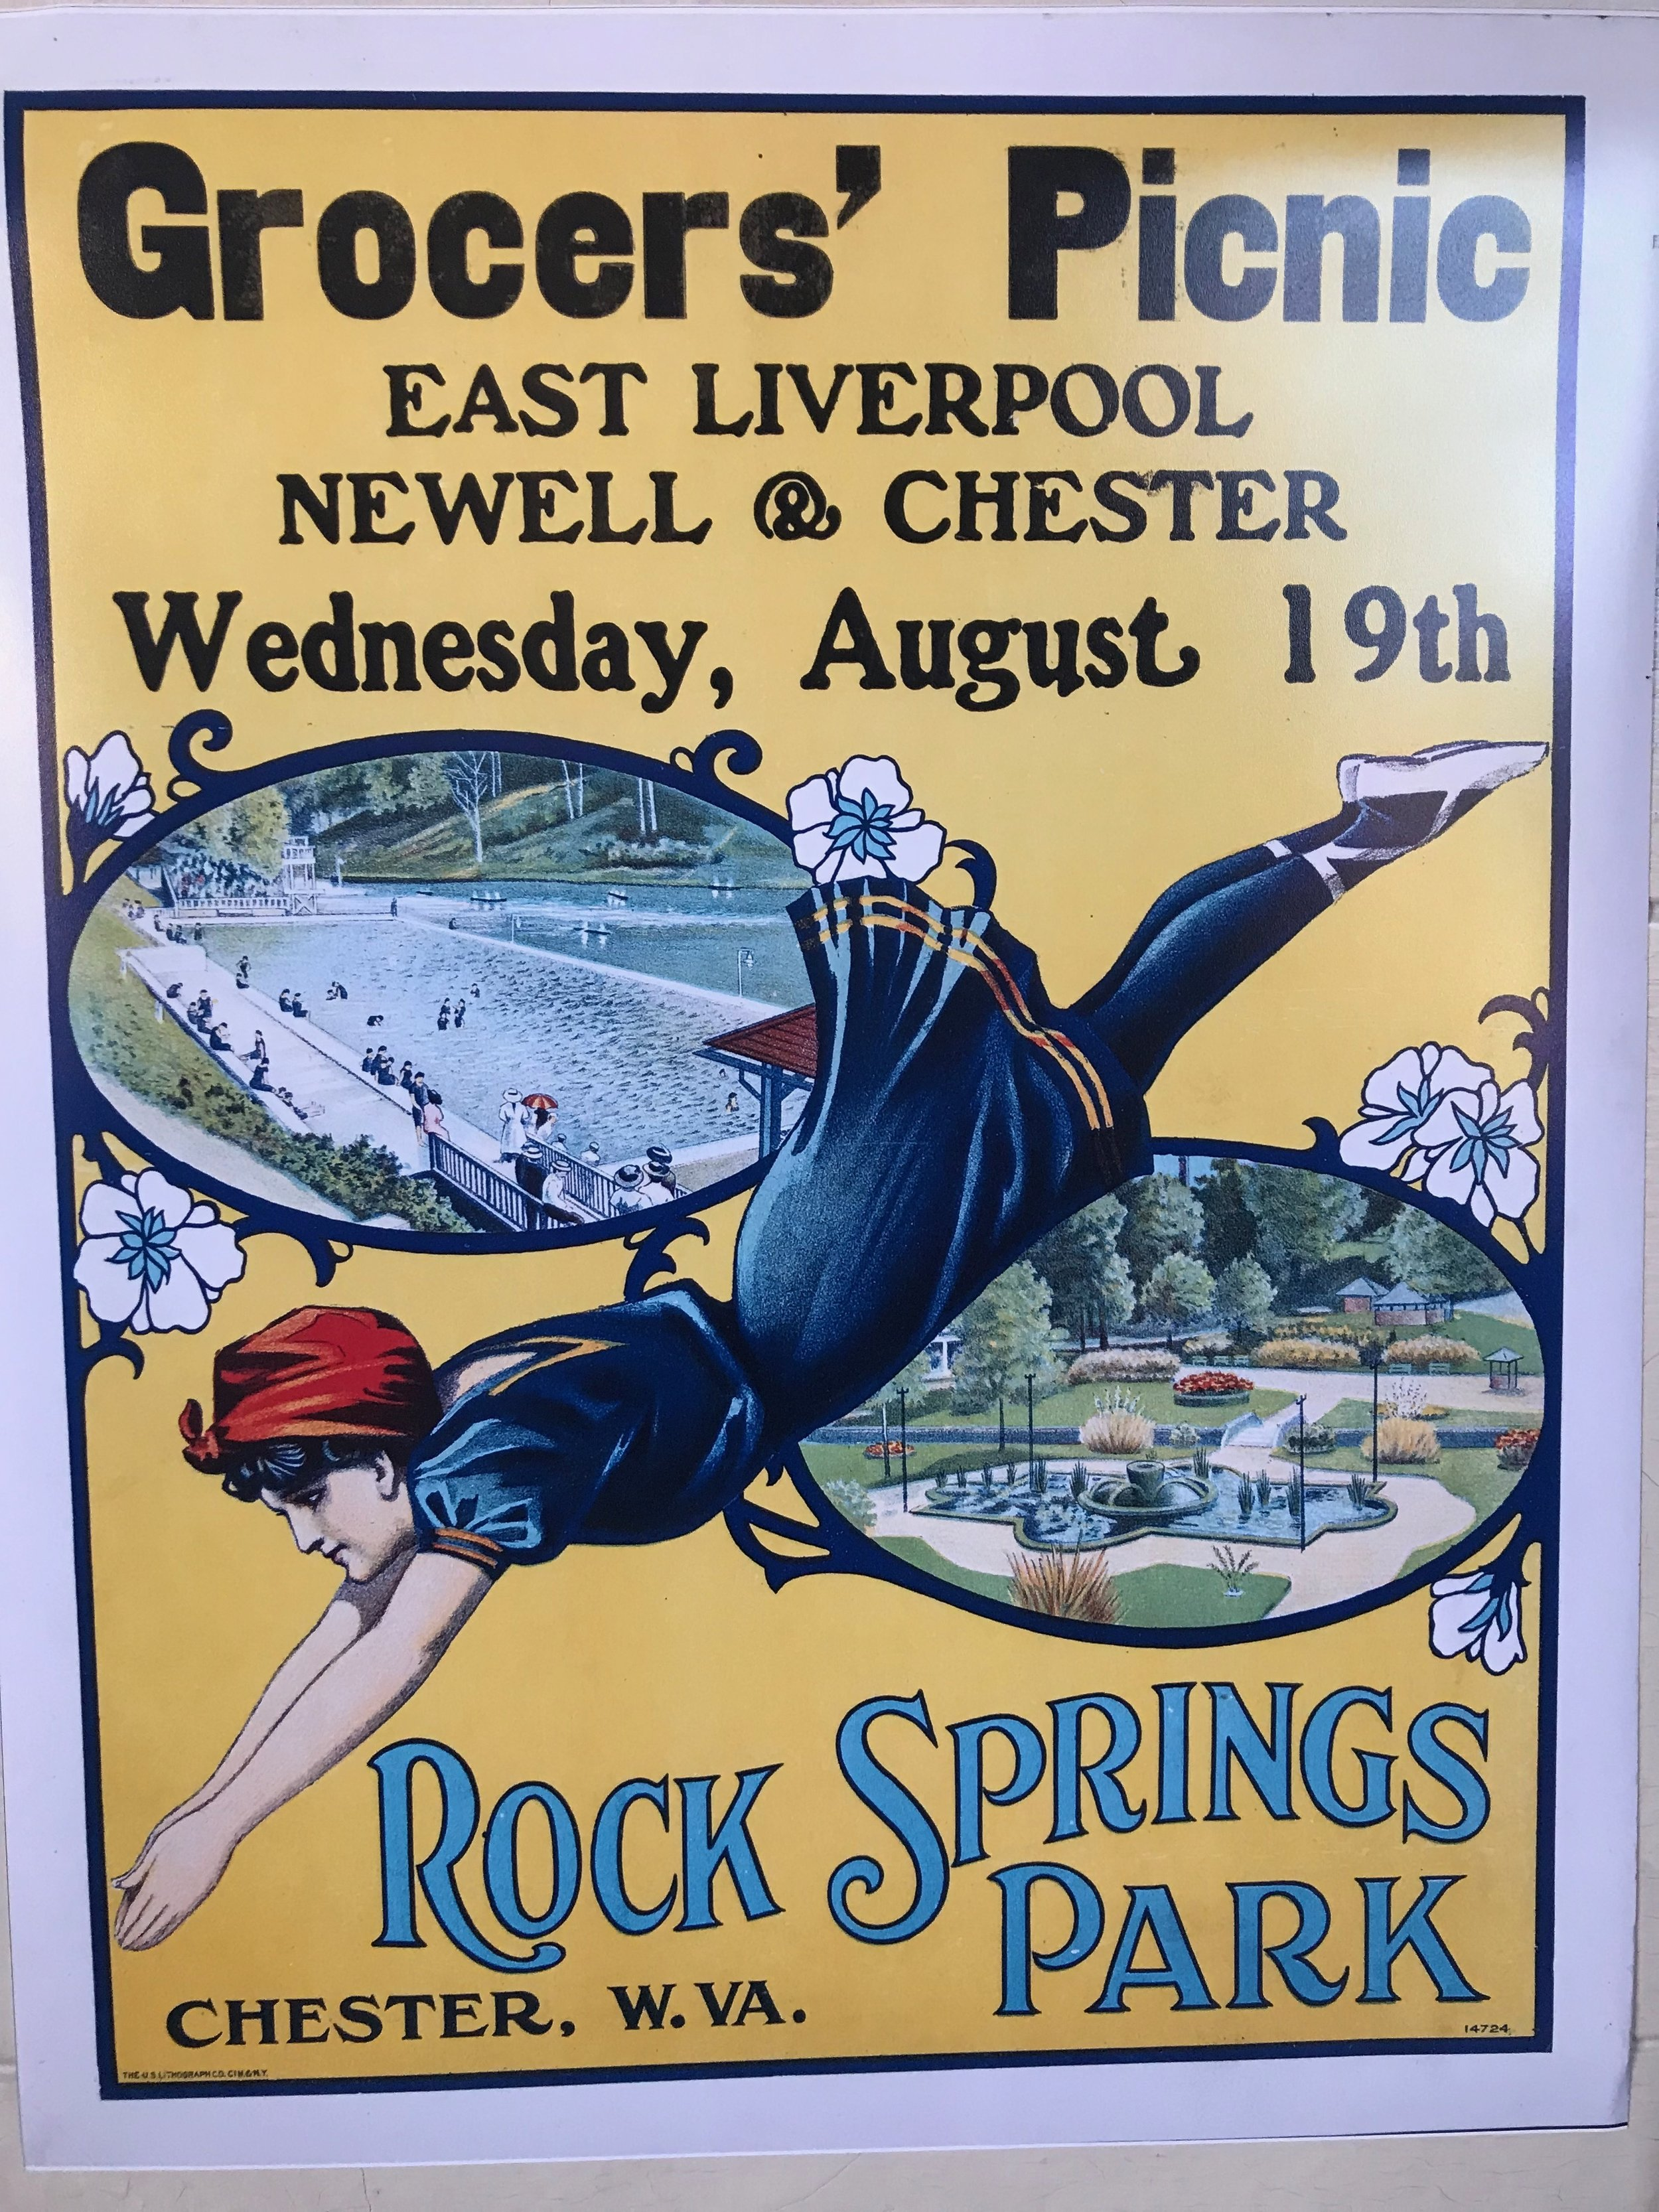 Reproduction of RSP poster